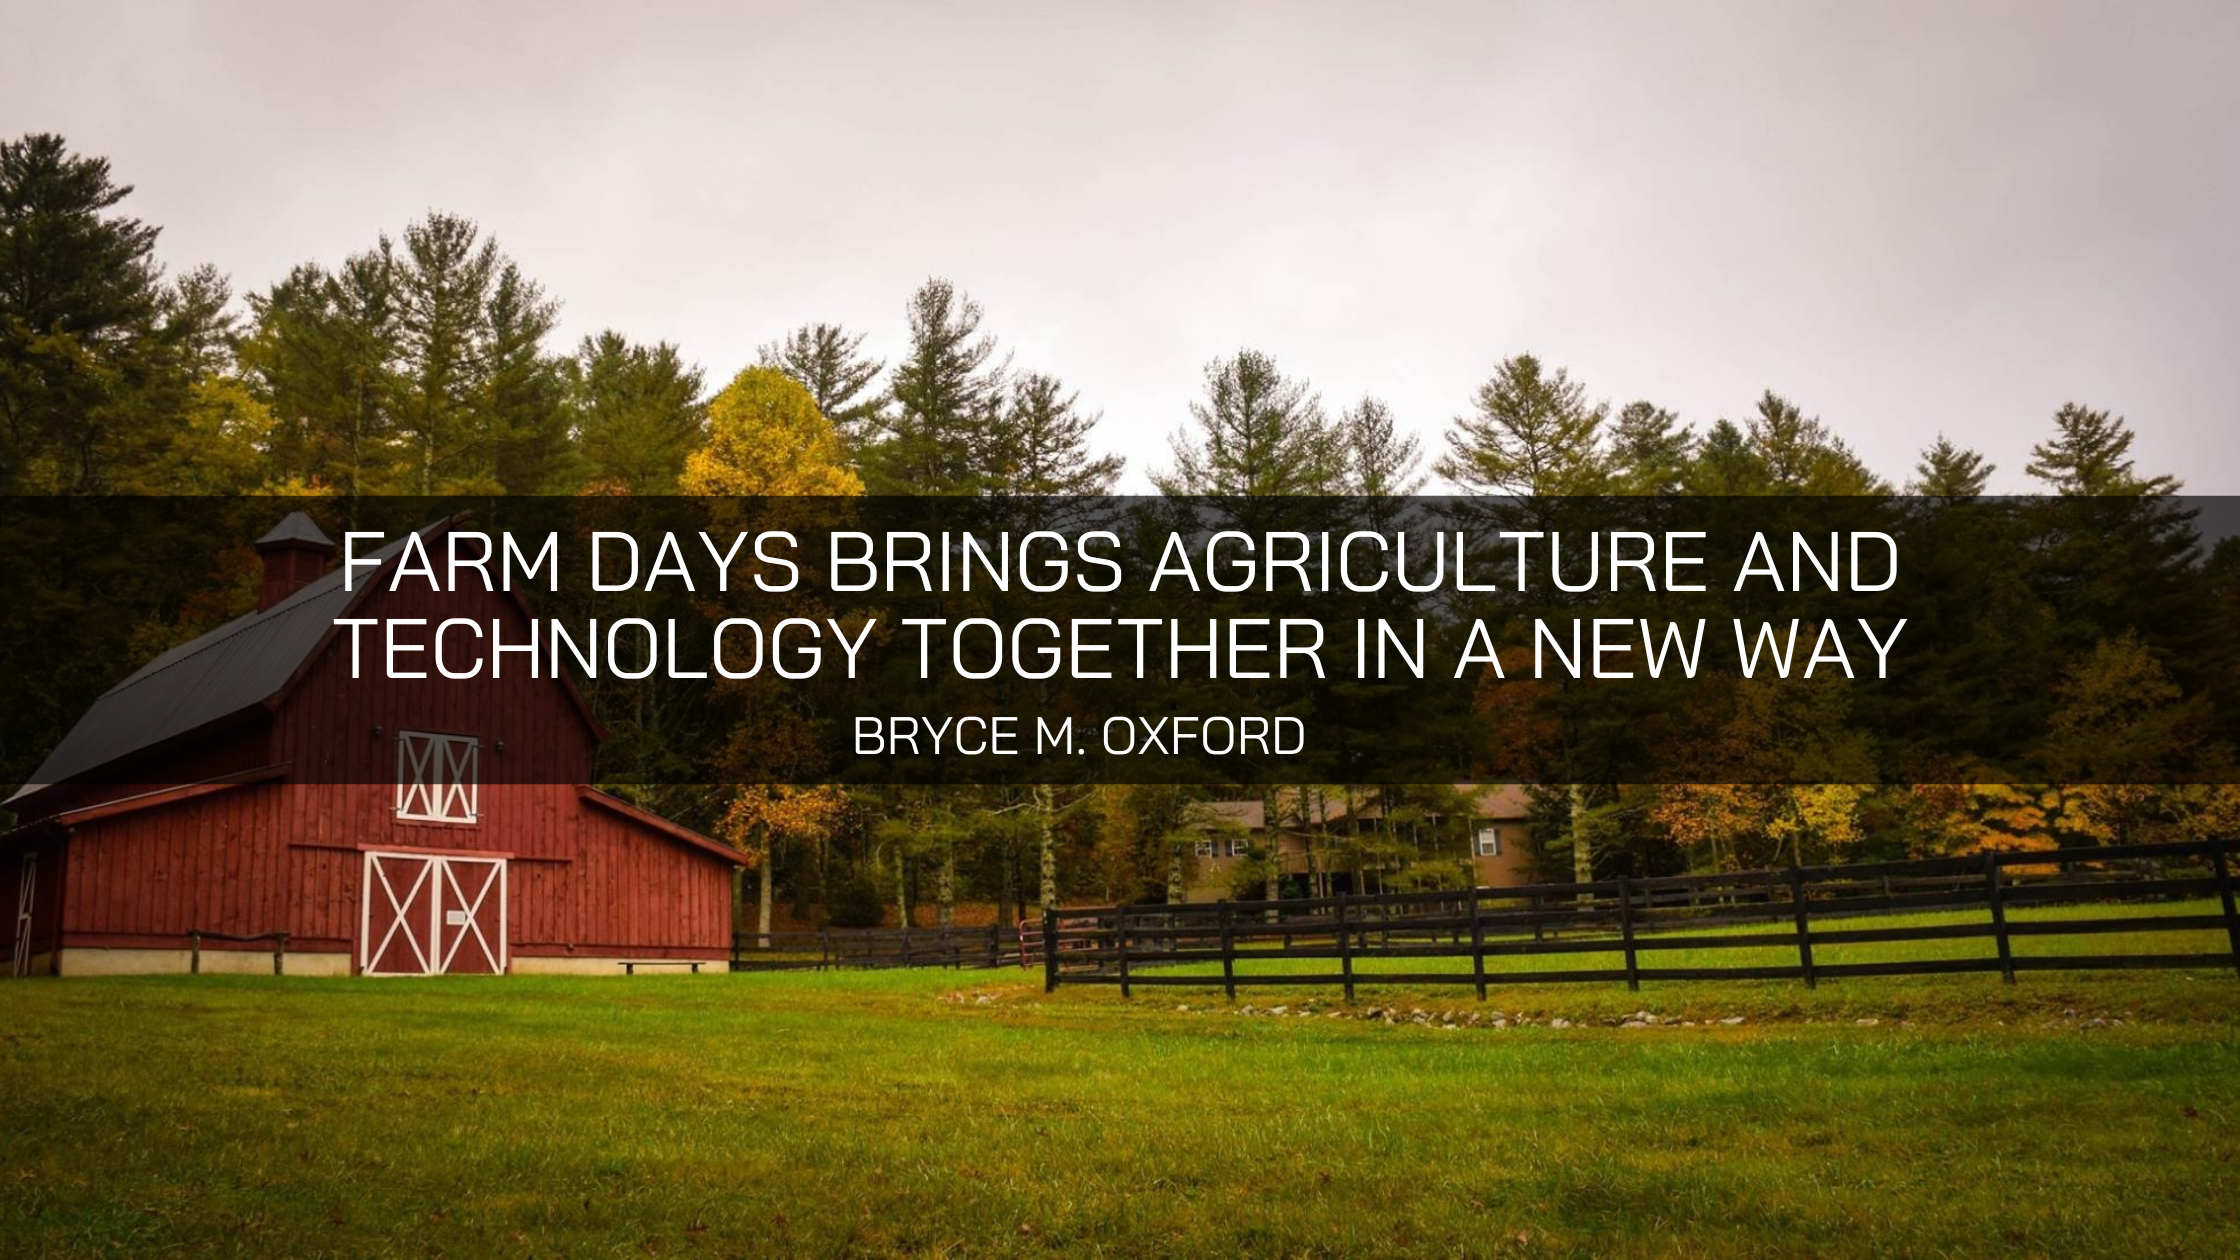 Bryce M. Oxford States Farm Days Brings Agriculture and Technology Together in a New Way